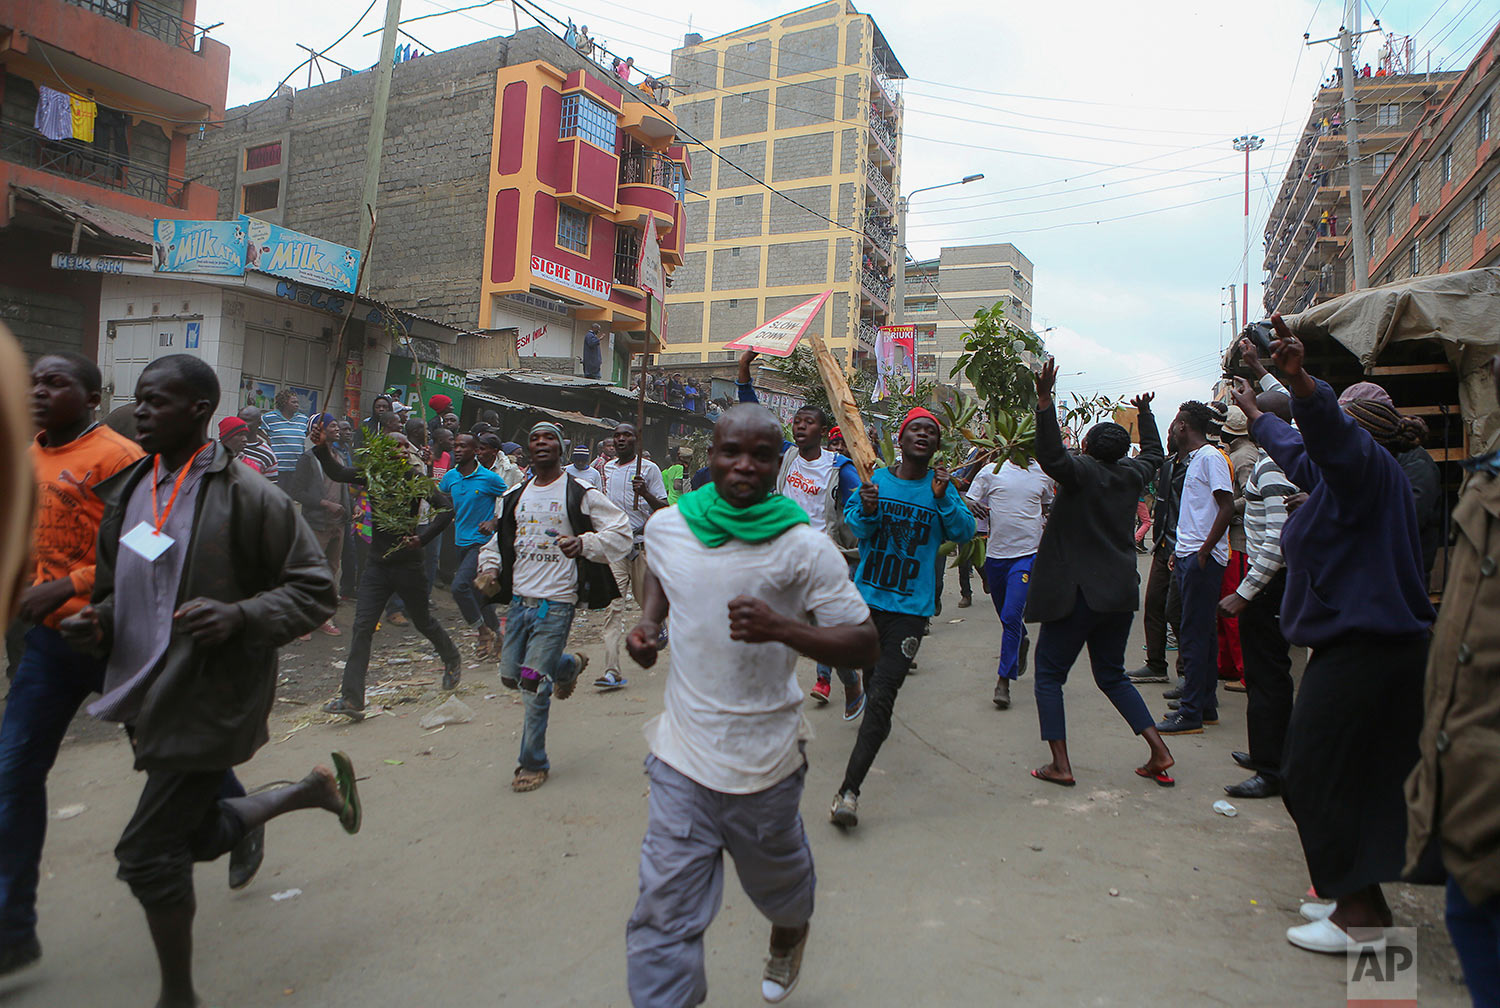 Residents of the Mathare area of Nairobi, Kenya, take to the streets by blocking roads with burning tyres to protest in support of Kenyan opposition leader and presidential candidate Raila Odinga, Wednesday, Aug. 9, 2017. Odinga alleges that hackers manipulated the Tuesday election results which appear to show President Uhuru Kenyatta has a wide lead over Odinga. (AP Photo. (AP Photo/Brian Inganga)